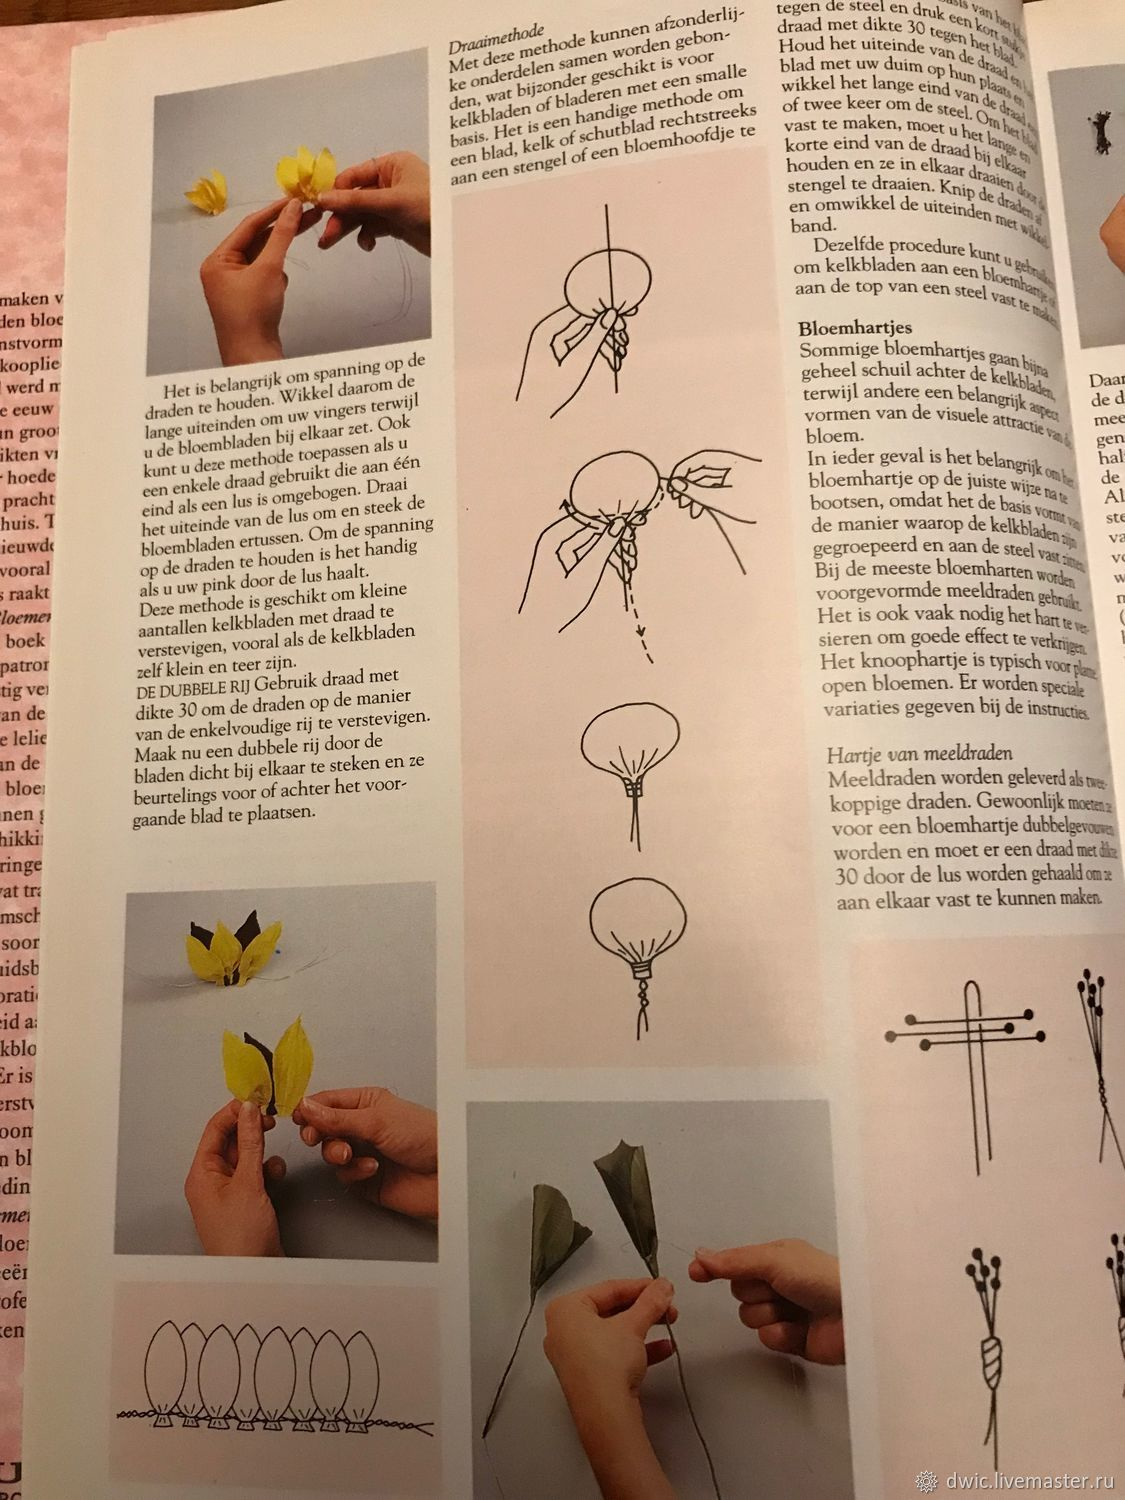 The Book Is About Creating Flowers From Silk The Netherlands Shop